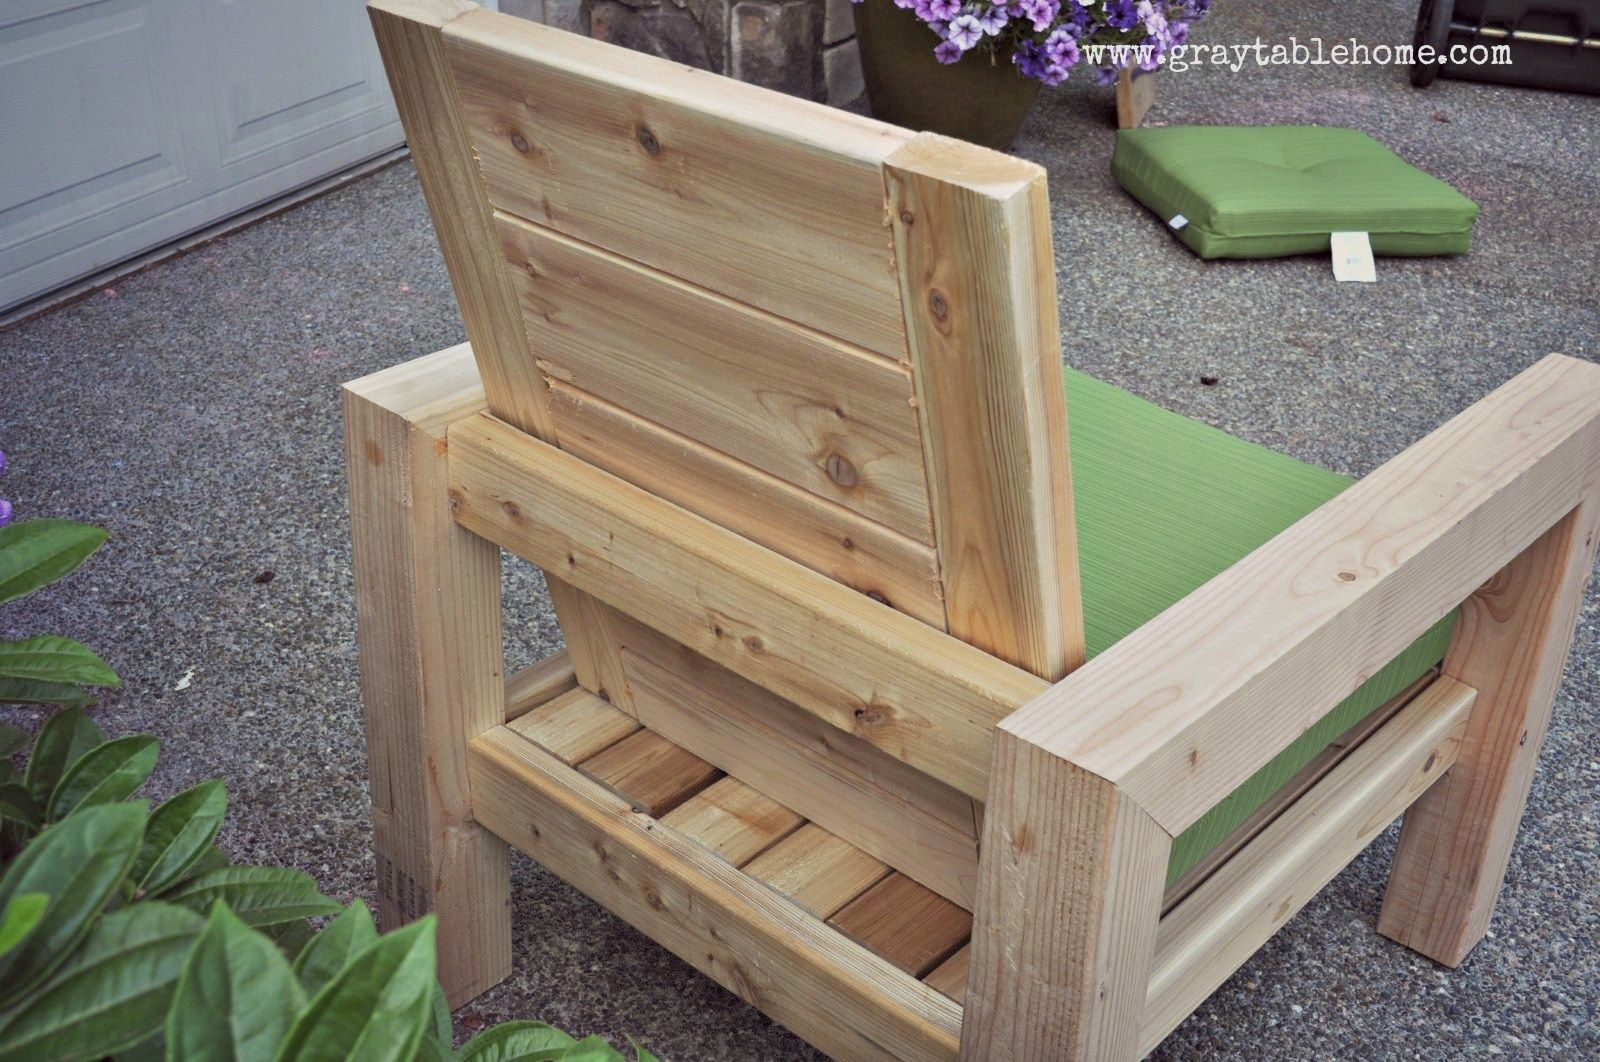 DIY Modern Rustic Outdoor Chair plans using outdoor cushions from ...